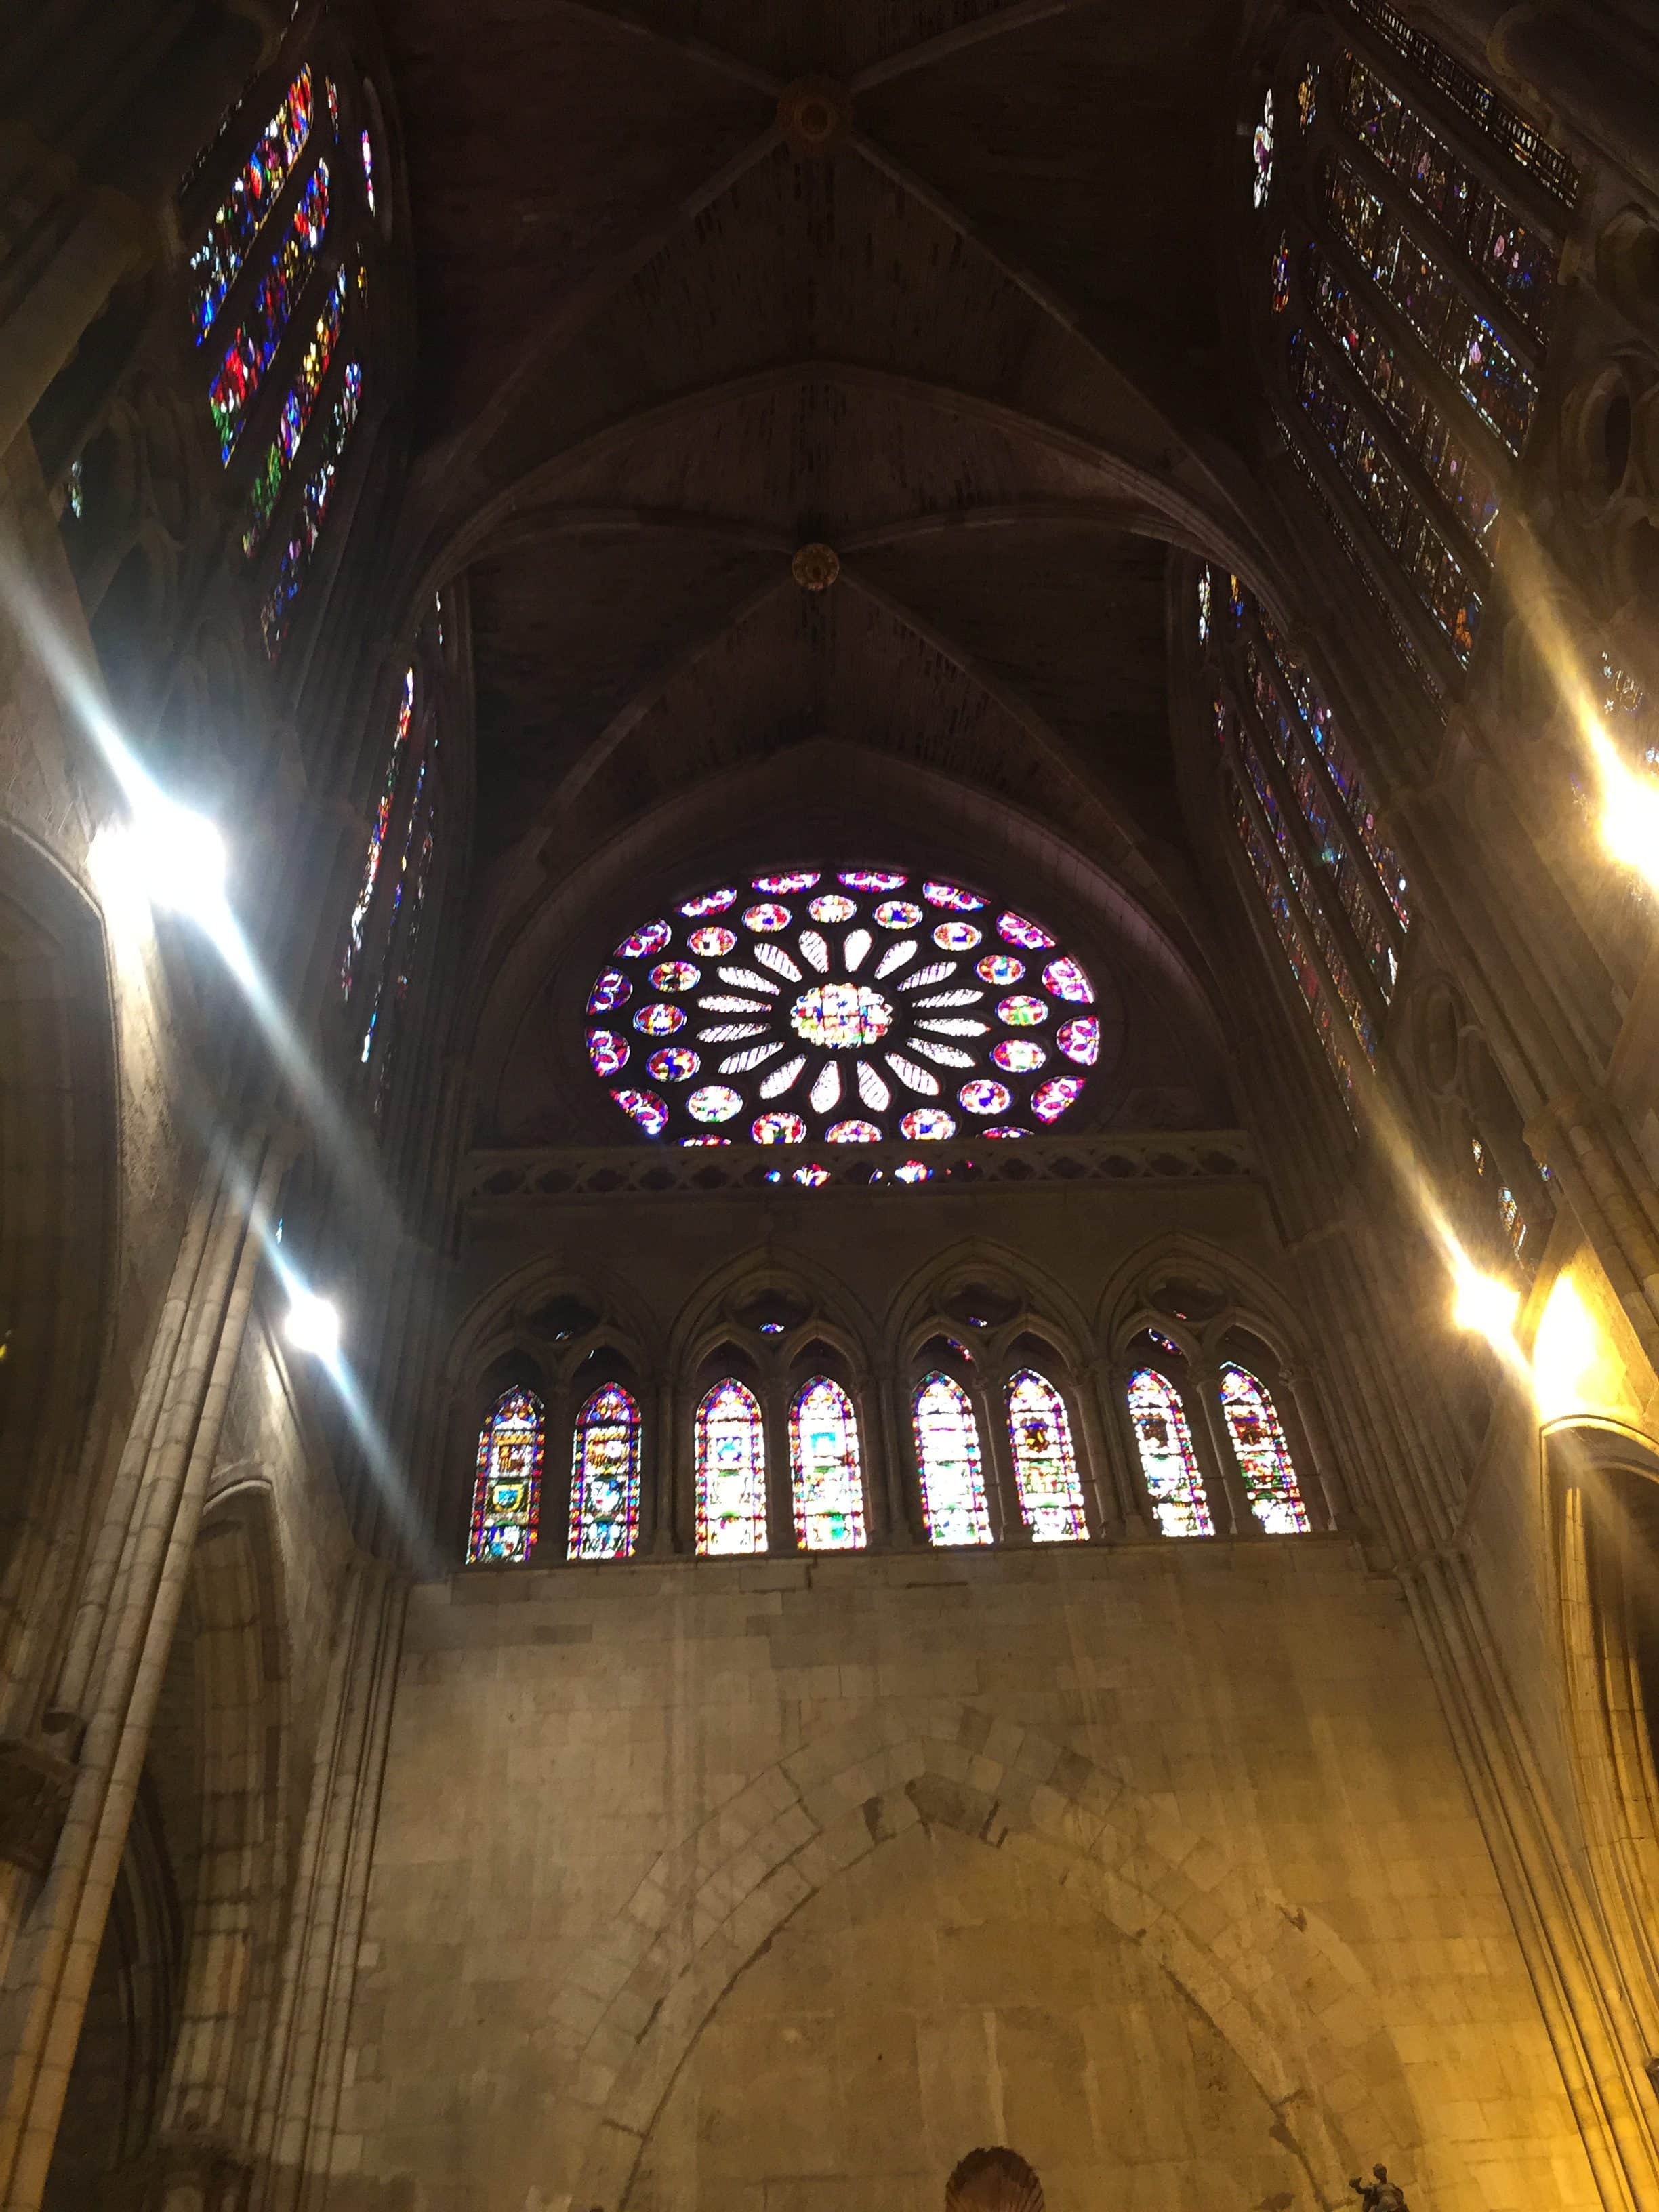 Stained glass windows inside cathedral